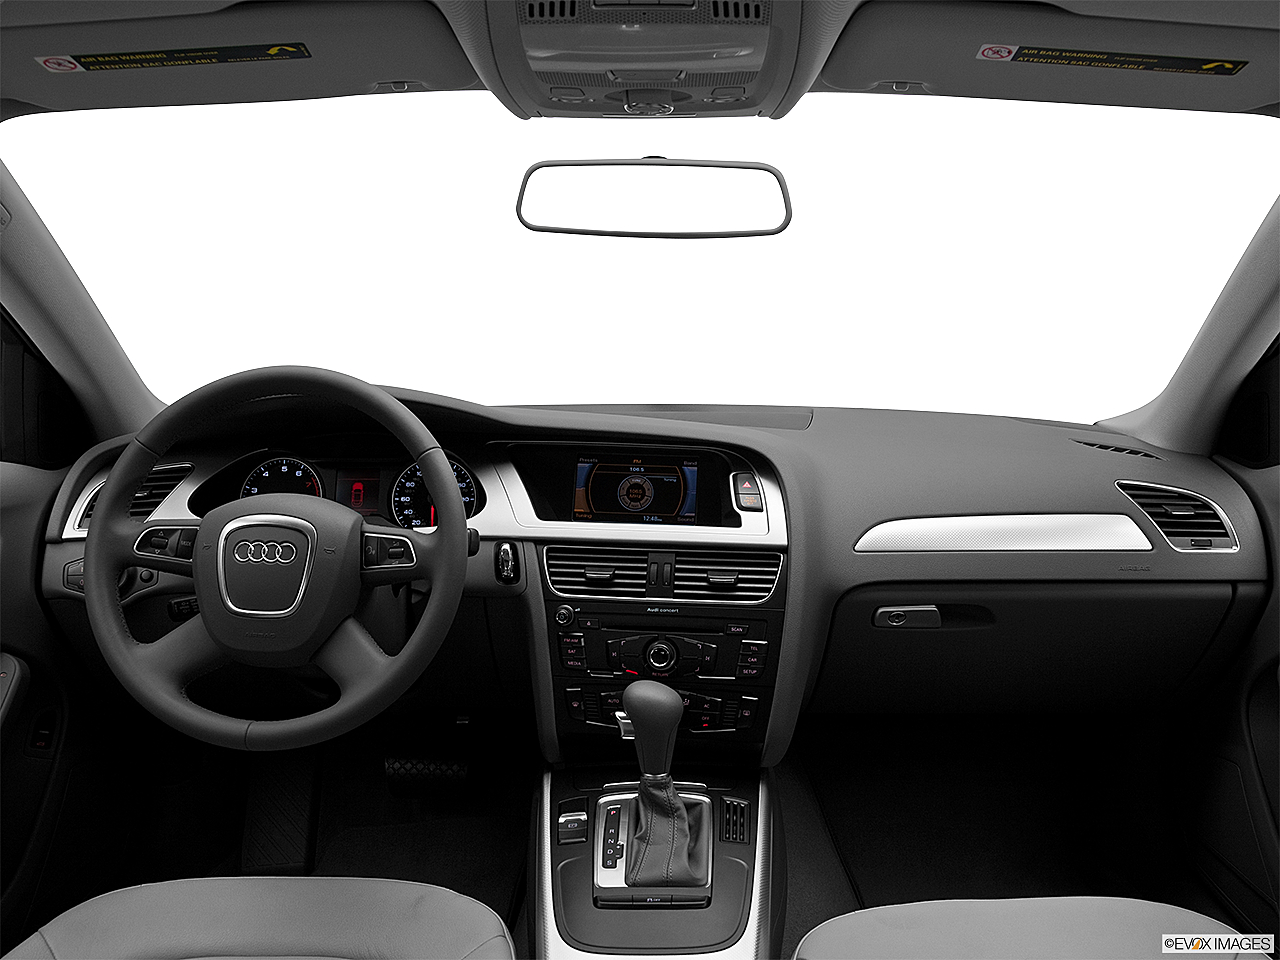 2011 Audi A4 2.0T, centered wide dash shot